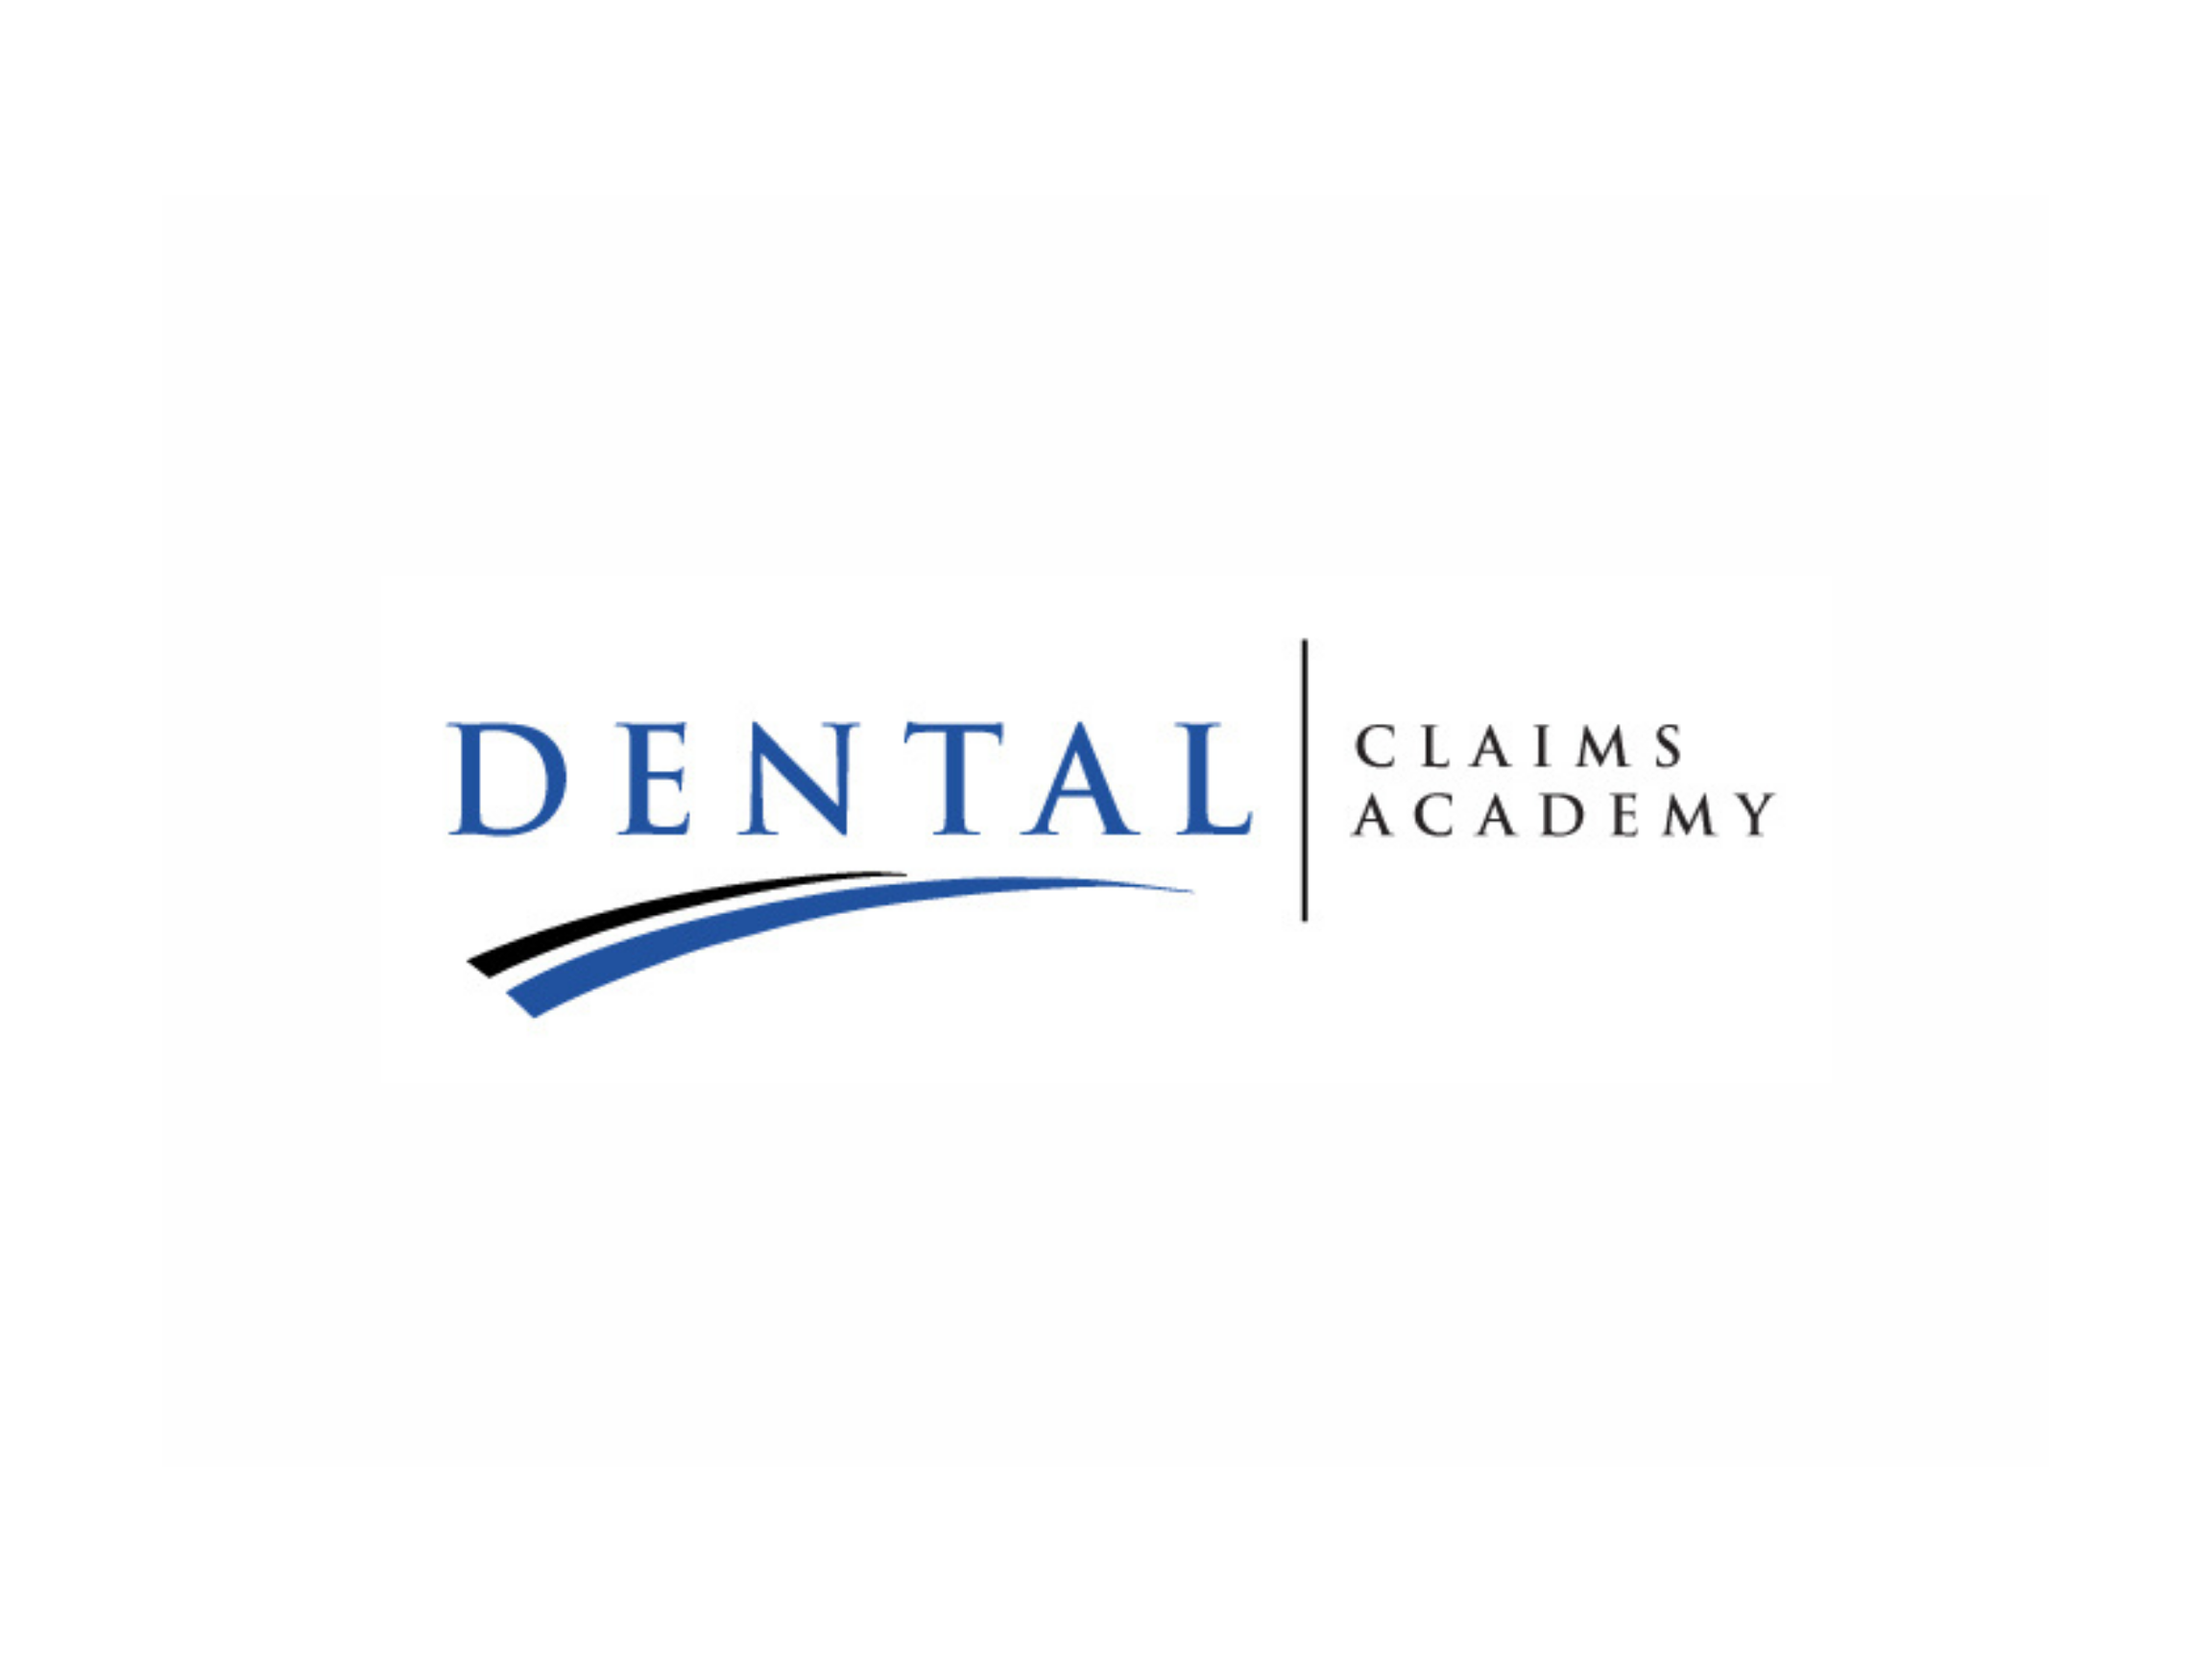 Dental Claims Academy: A dental practice's educational resource